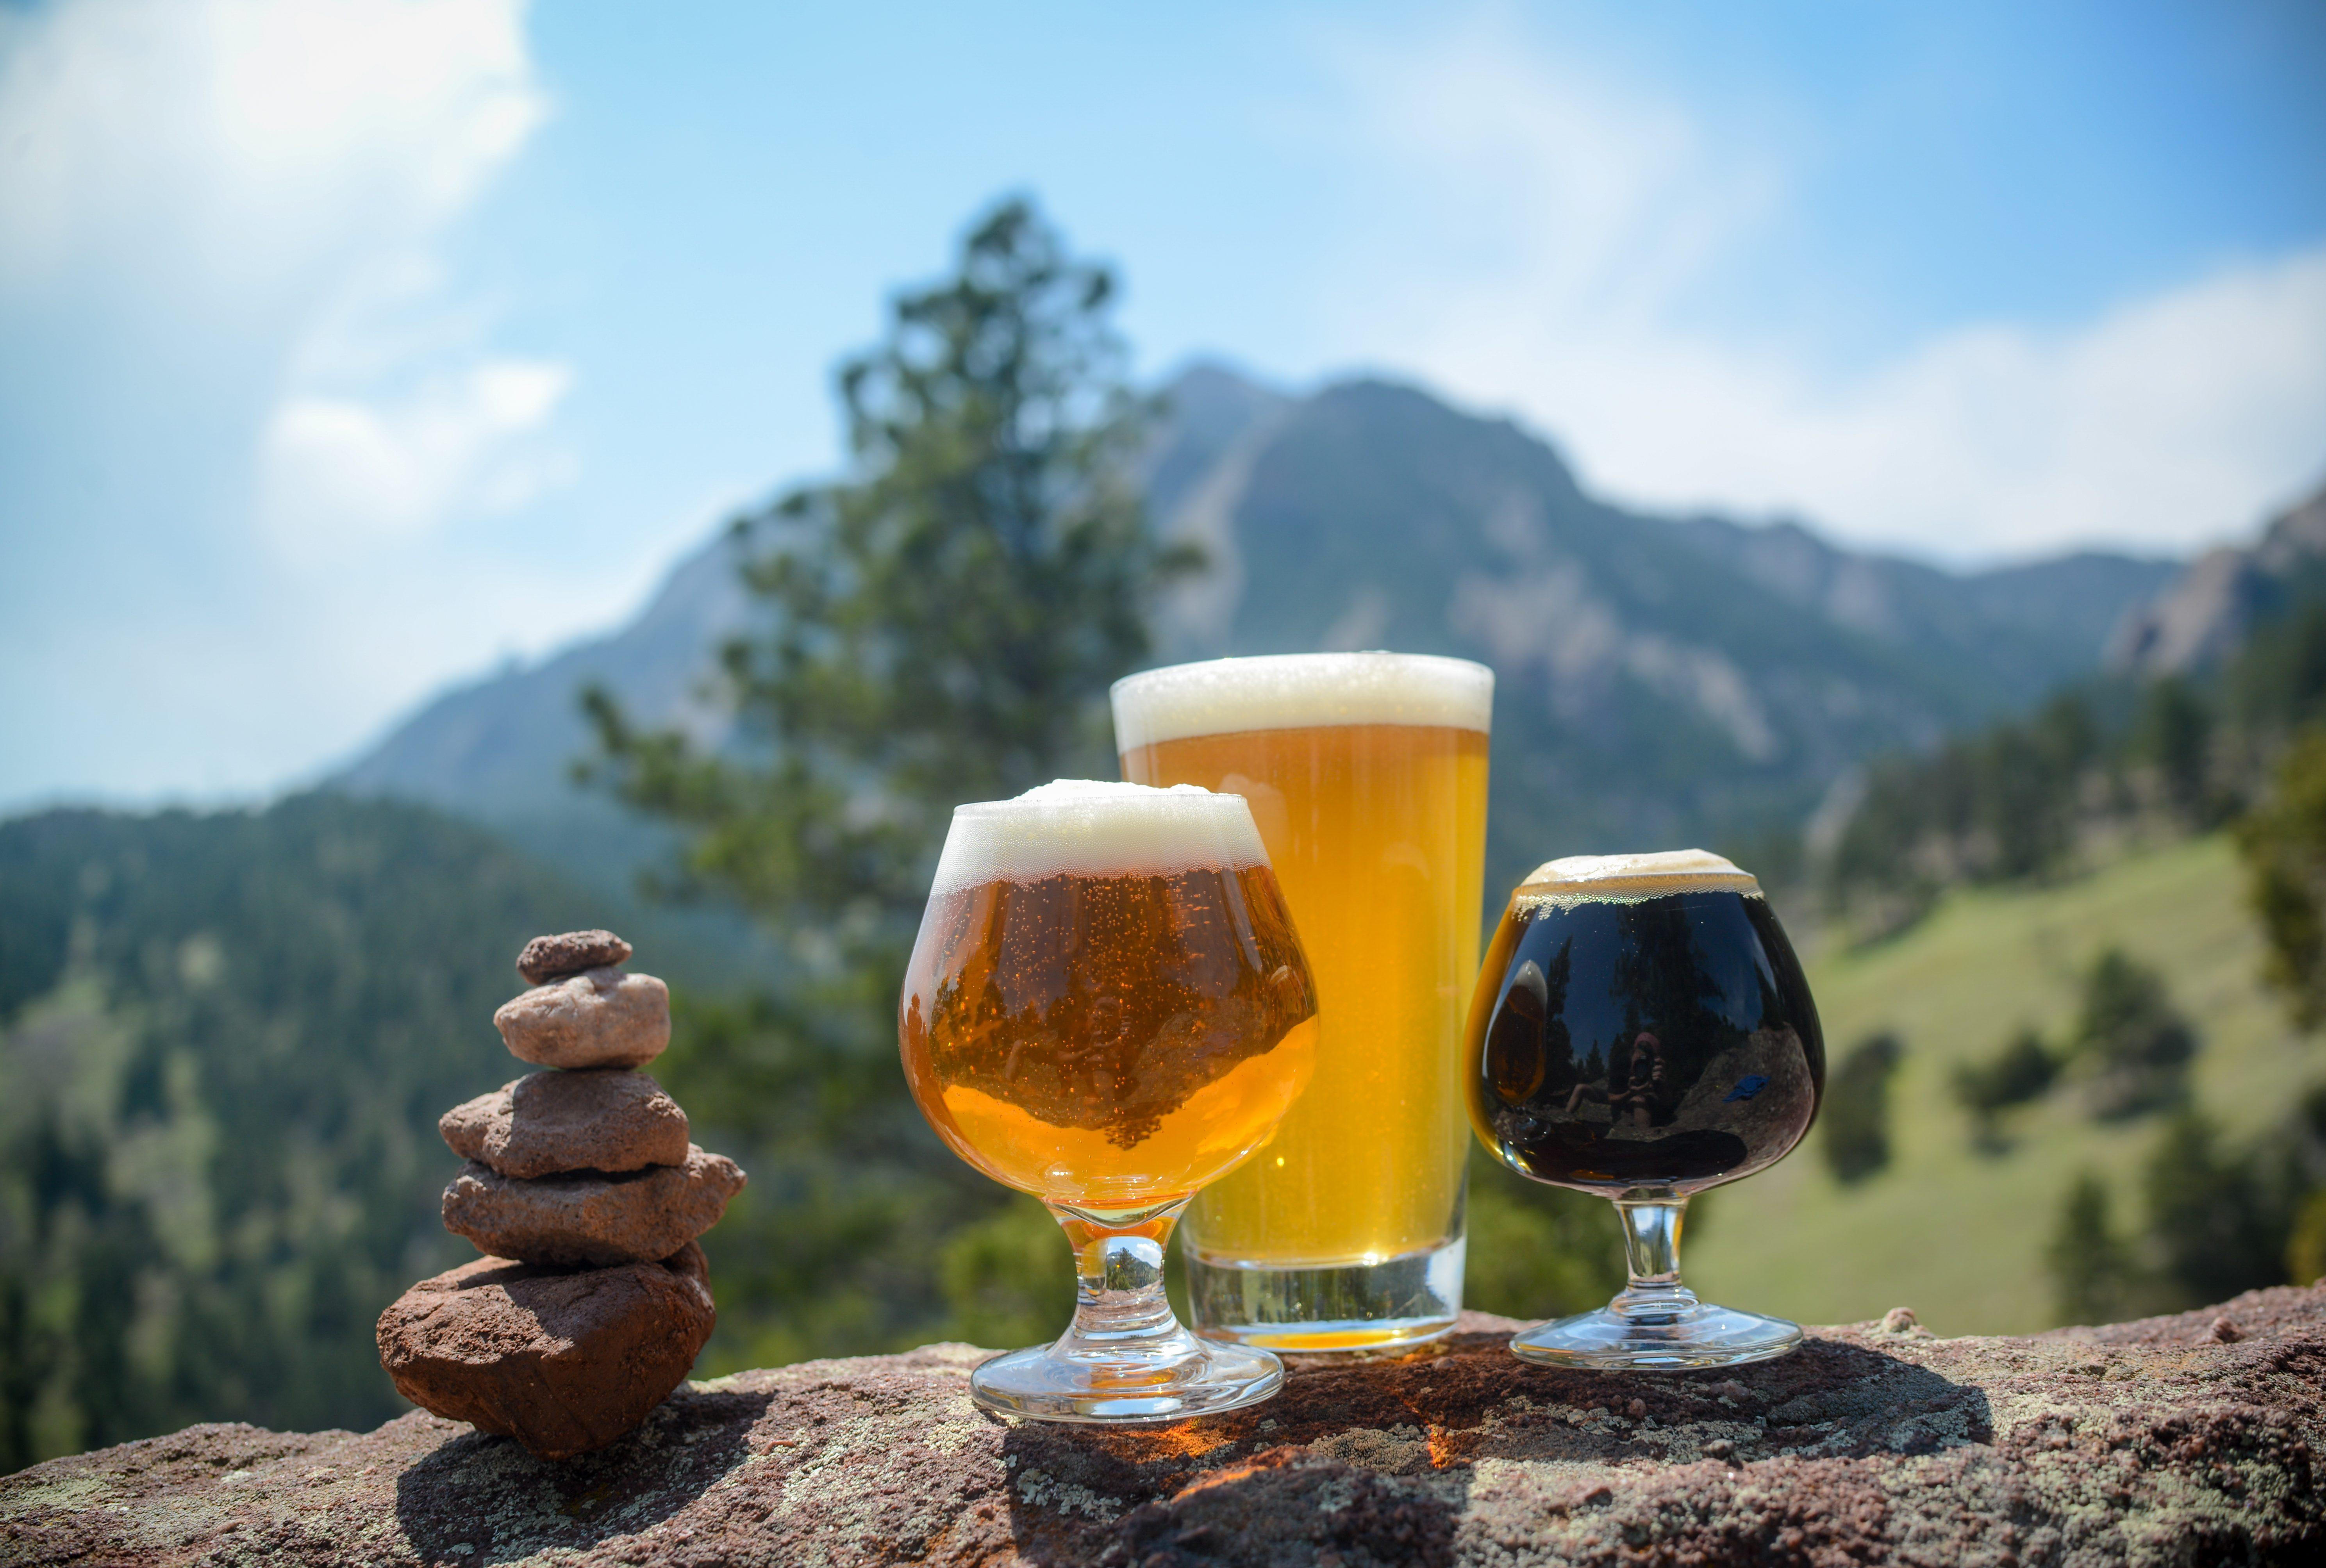 Solar panels, cannabis and blue jeans – helping to make the American craft brewing industry more sustainable